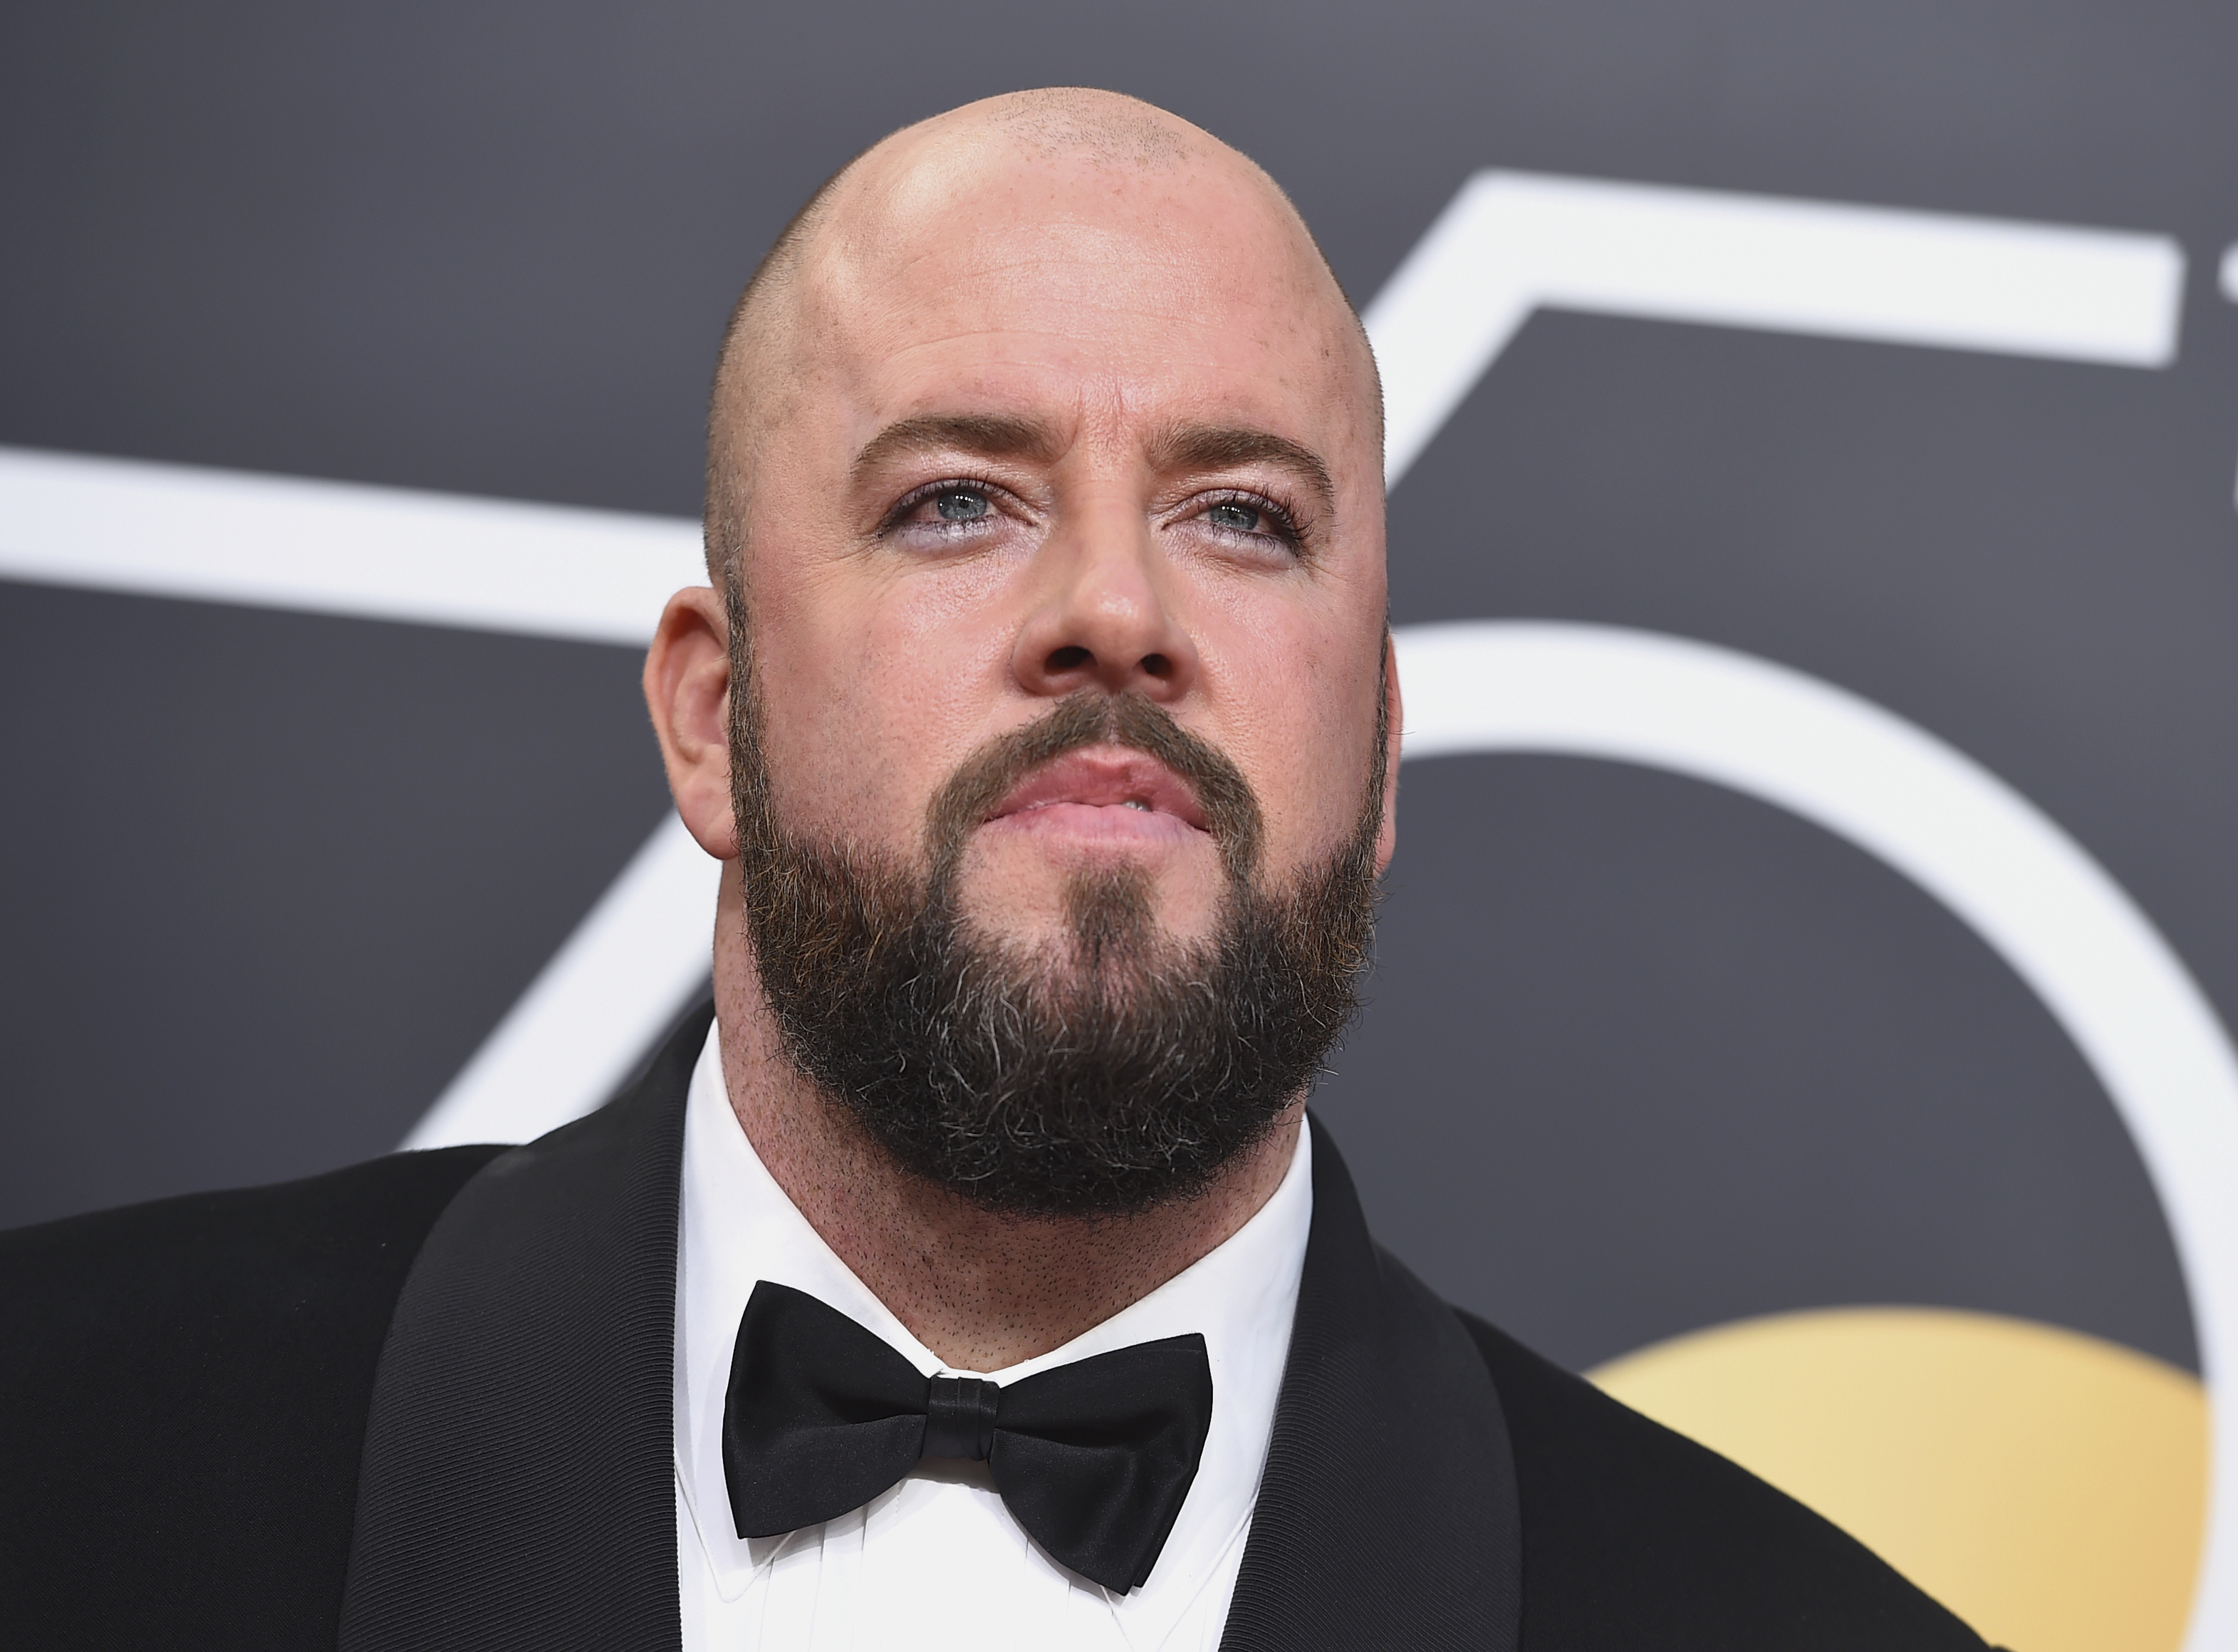 <div class='meta'><div class='origin-logo' data-origin='AP'></div><span class='caption-text' data-credit='Jordan Strauss/Invision/AP'>Chris Sullivan arrives at the 75th annual Golden Globe Awards at the Beverly Hilton Hotel on Sunday, Jan. 7, 2018, in Beverly Hills, Calif.</span></div>